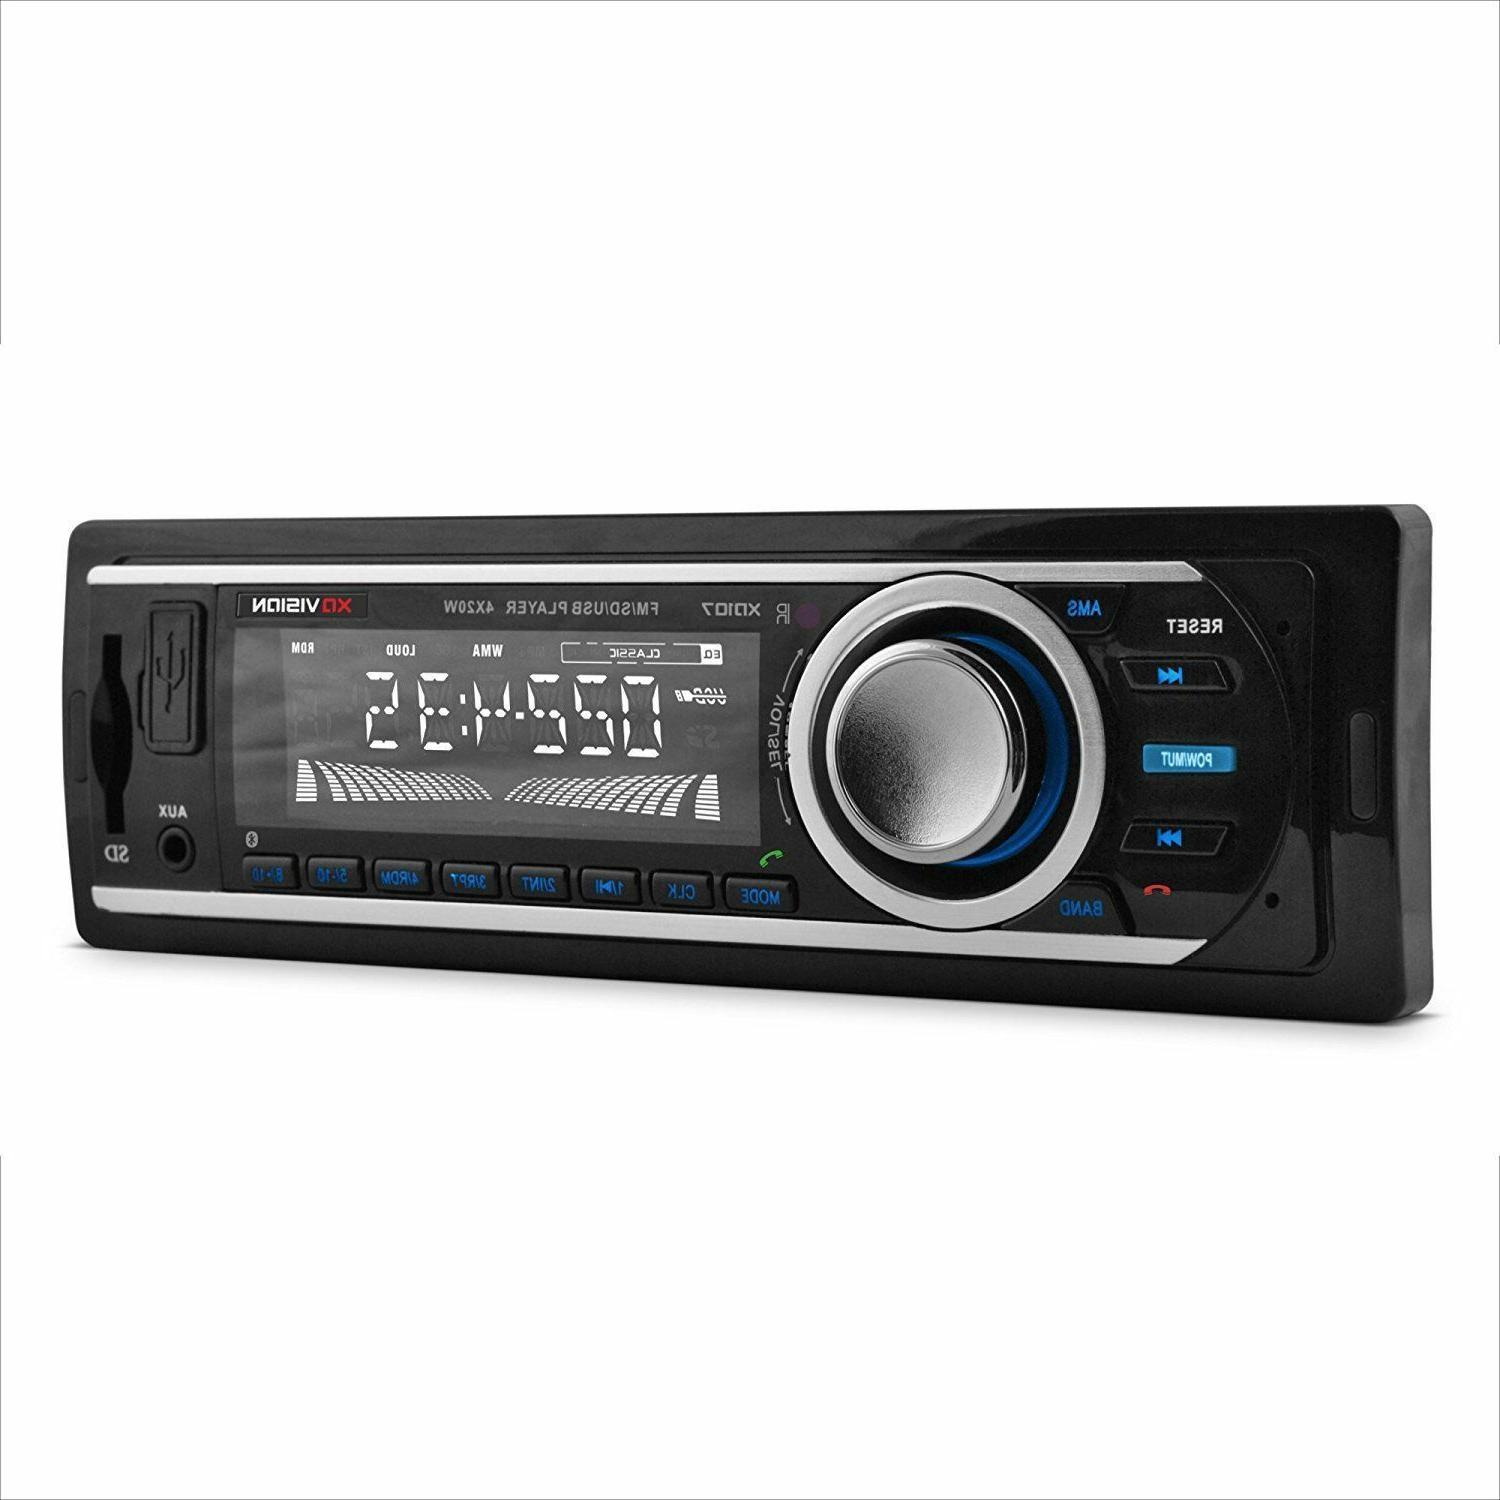 FM MP3 Stereo Receiver with USB